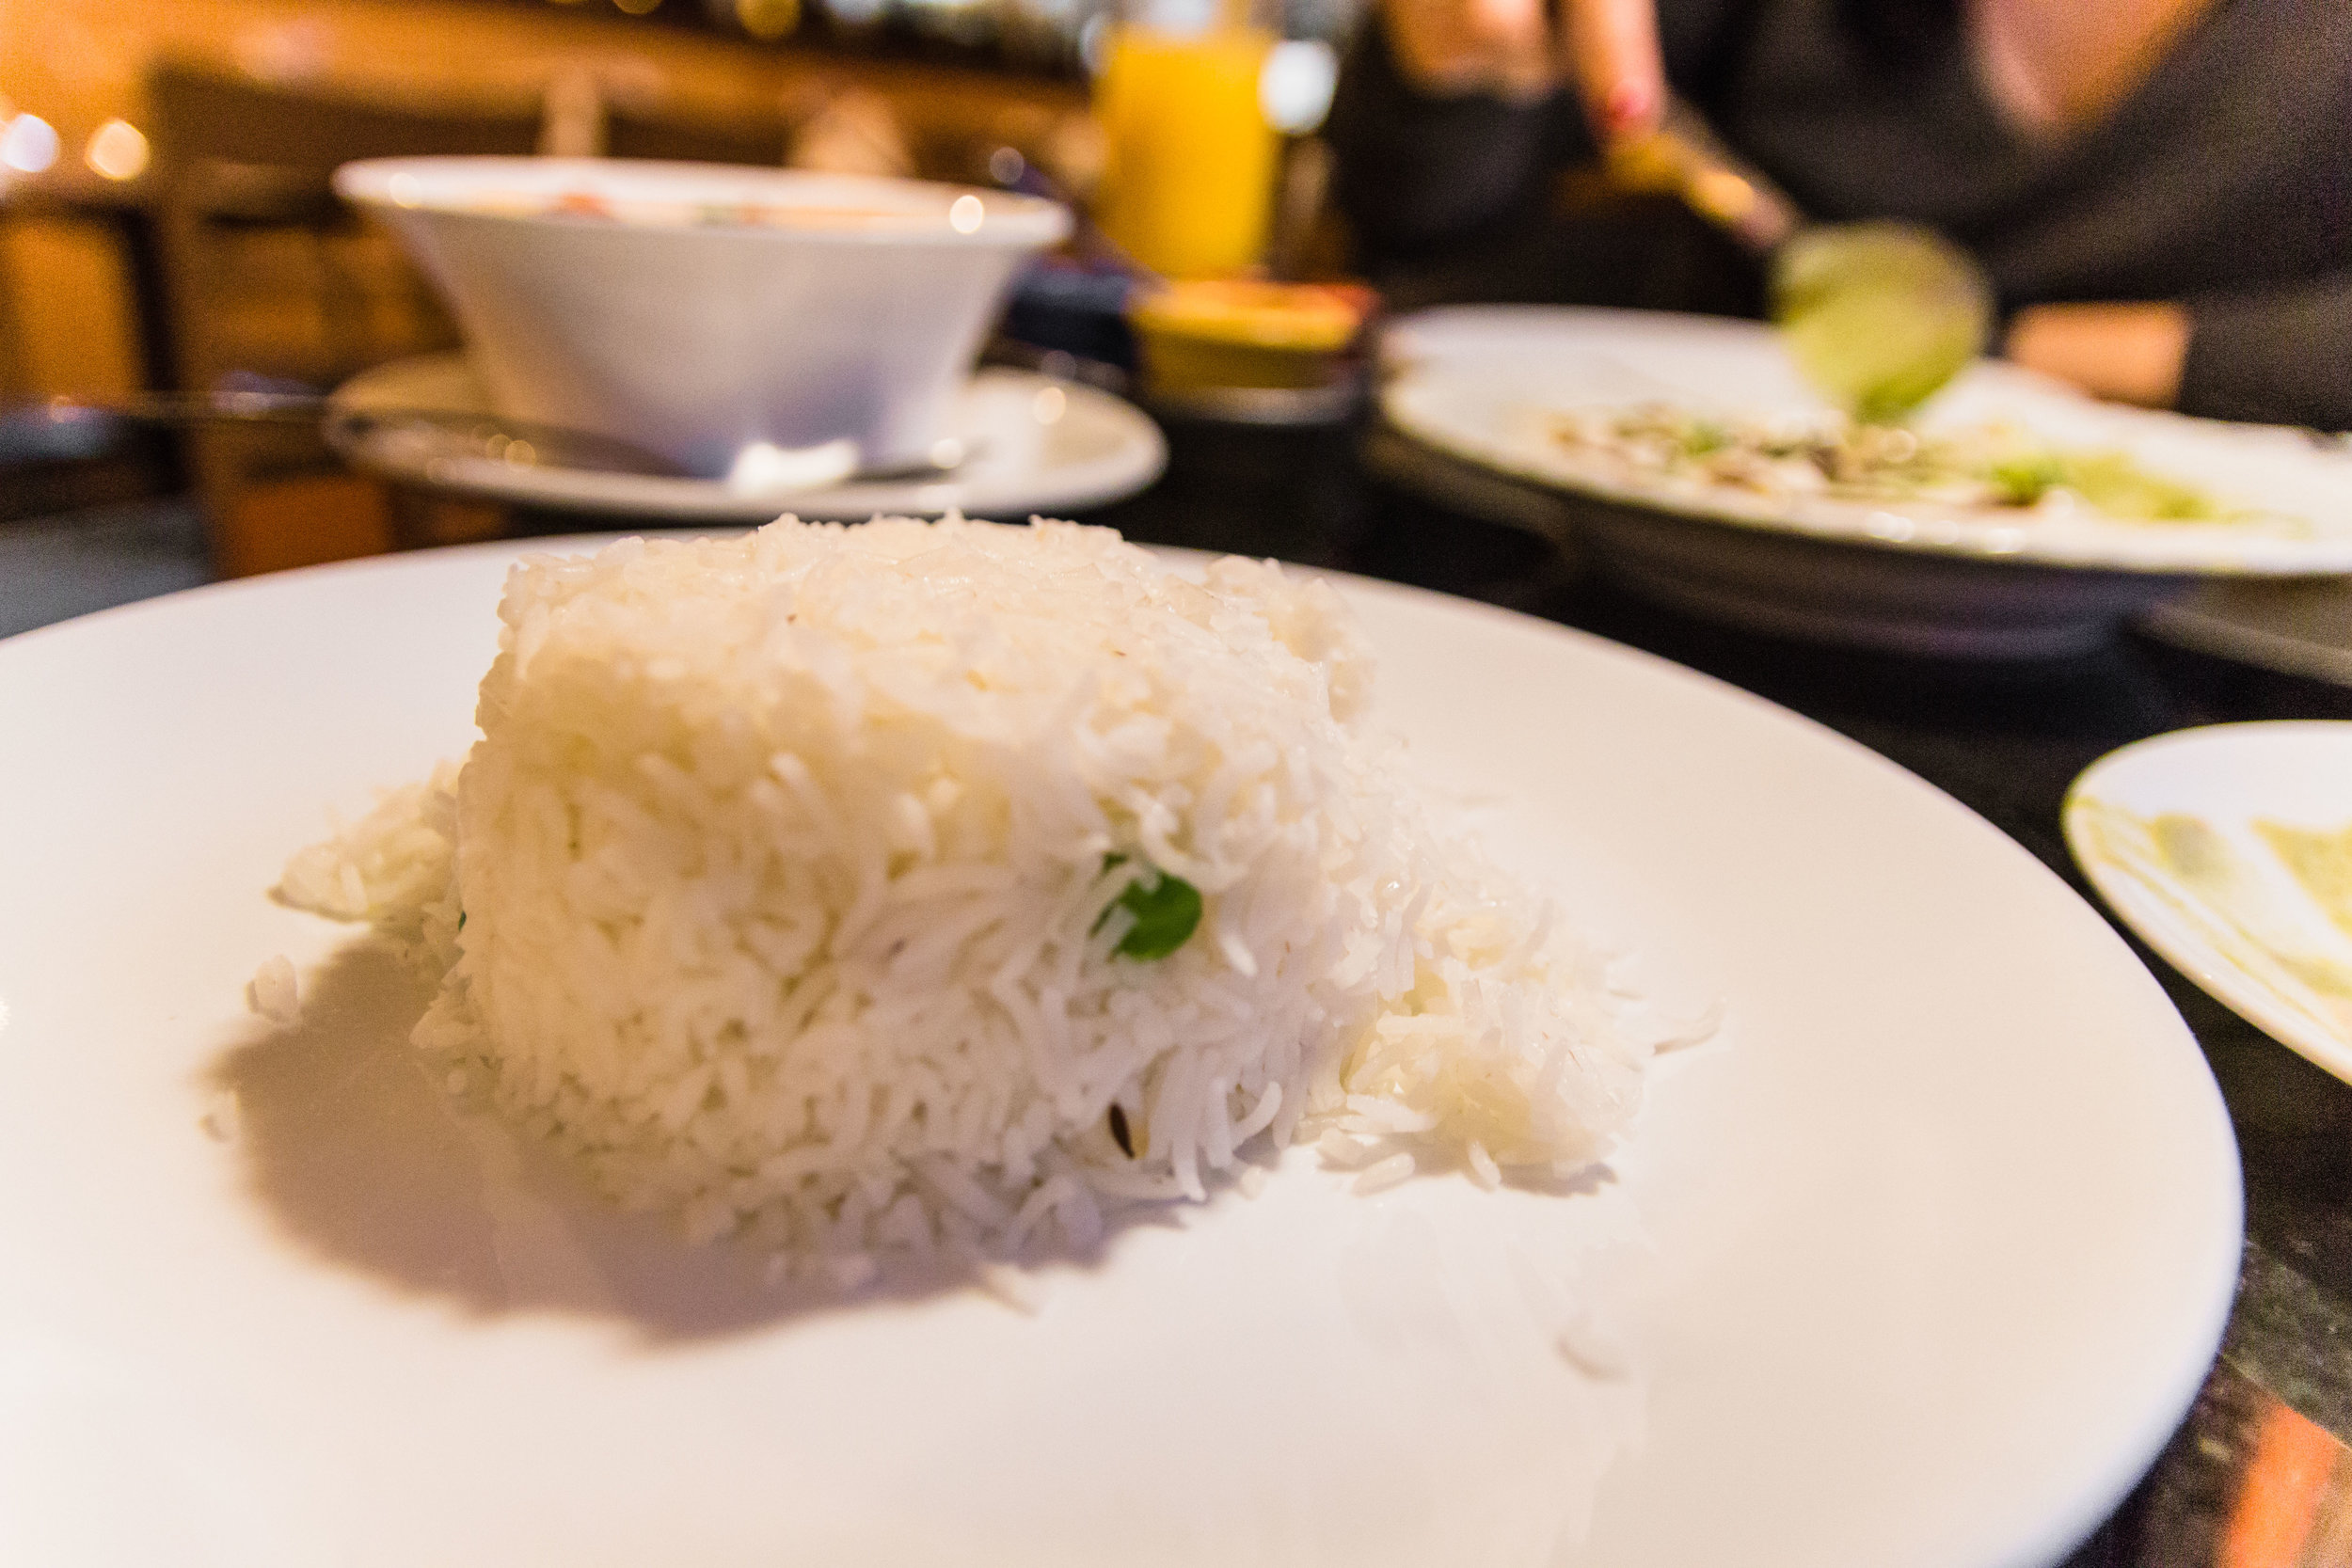 Rice on the side